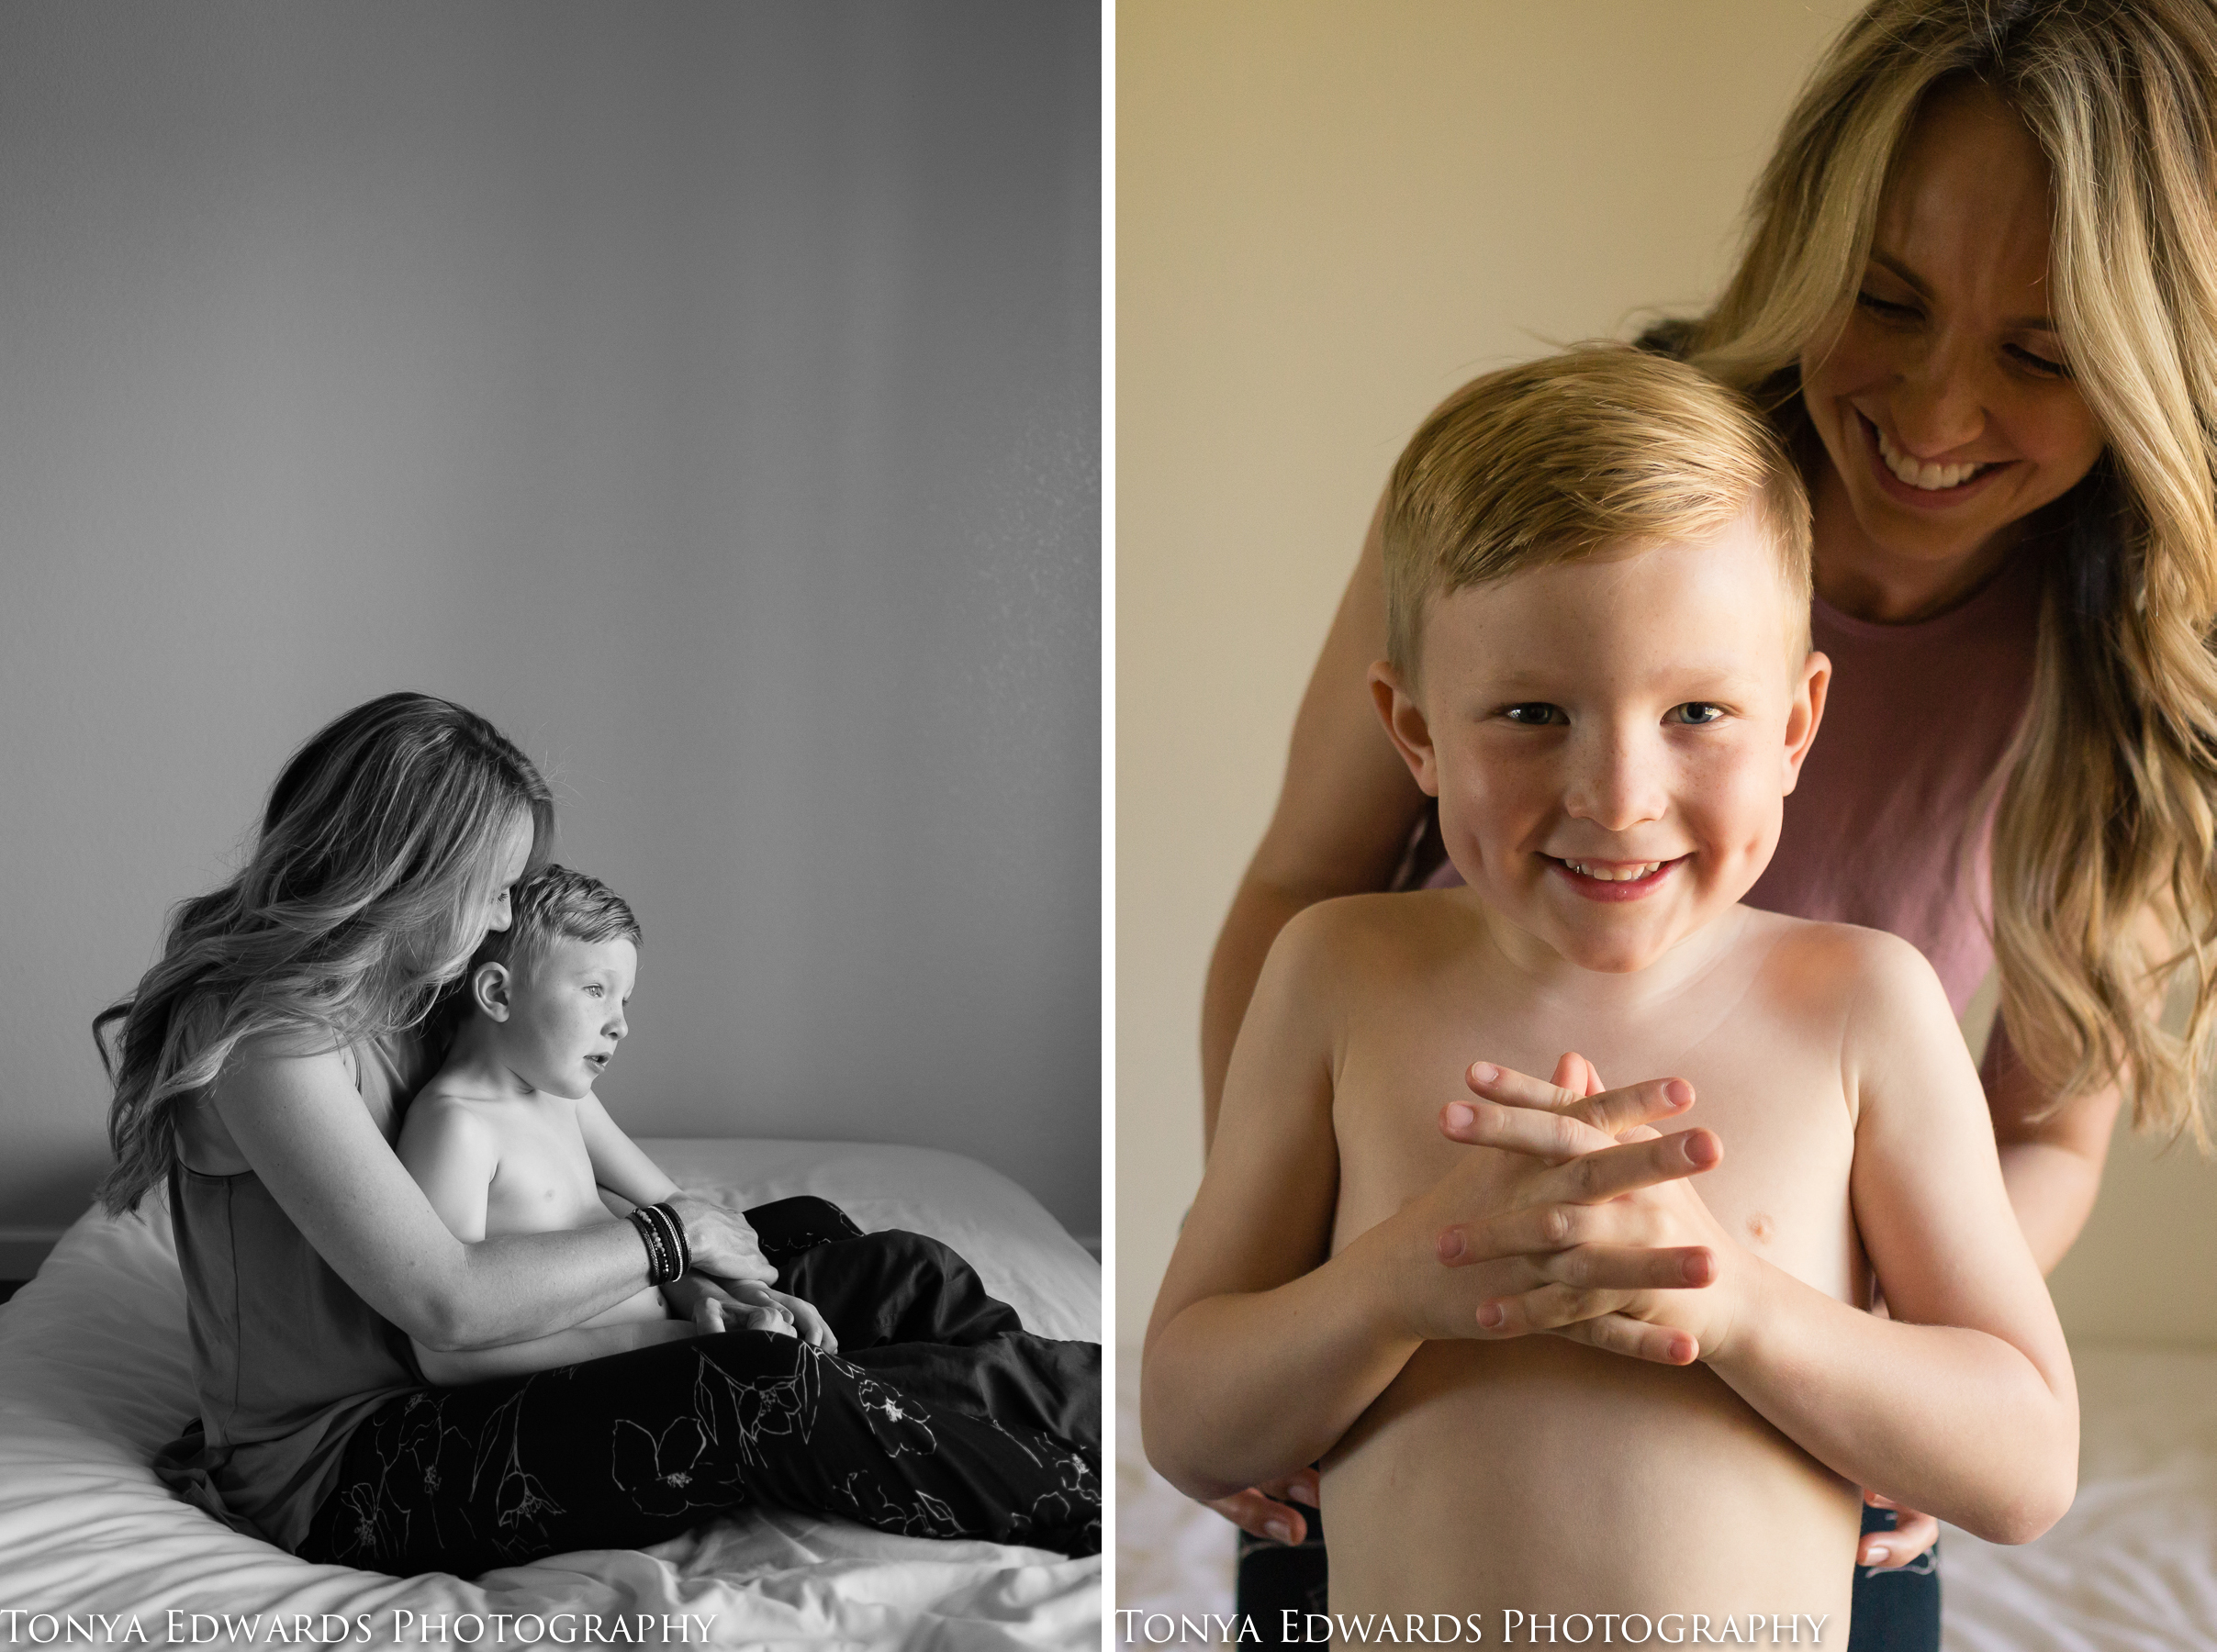 Tonya Edwards | Oroville Photographer | preschool son with his mama playing games and snuggling on the bed in natural window light